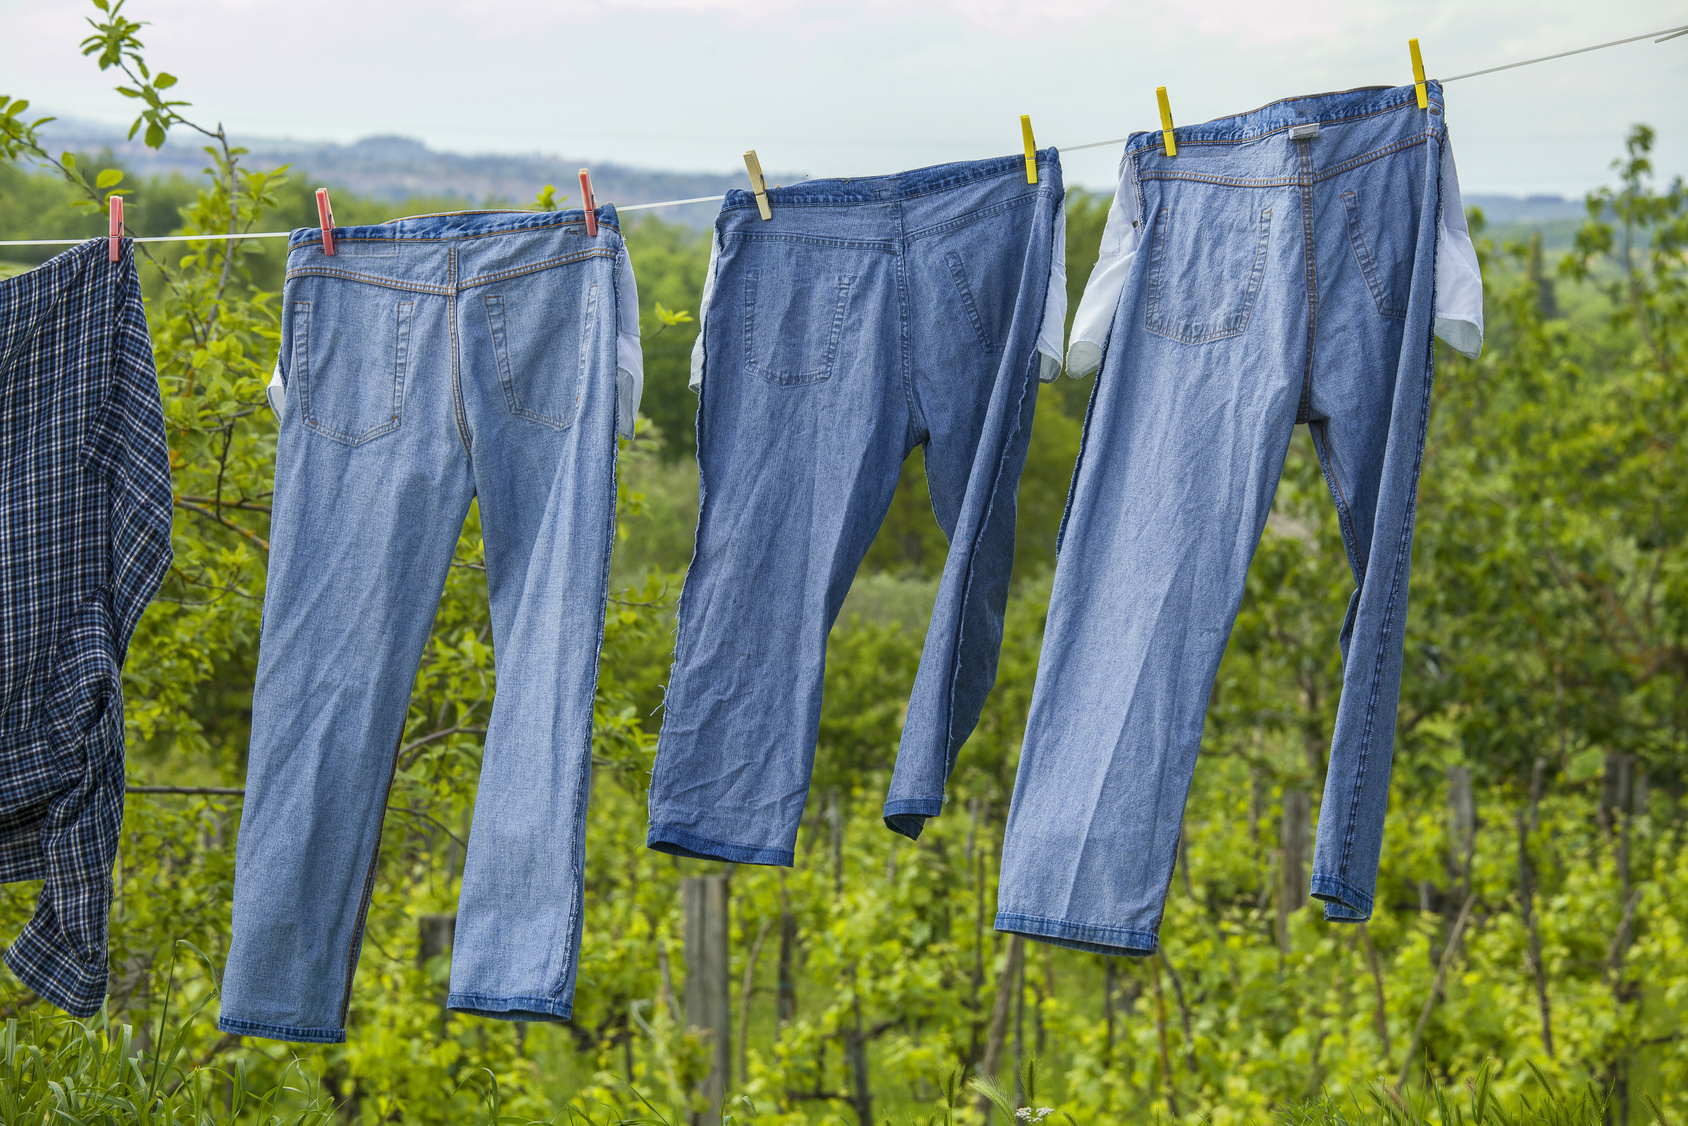 Jeans drying on a line